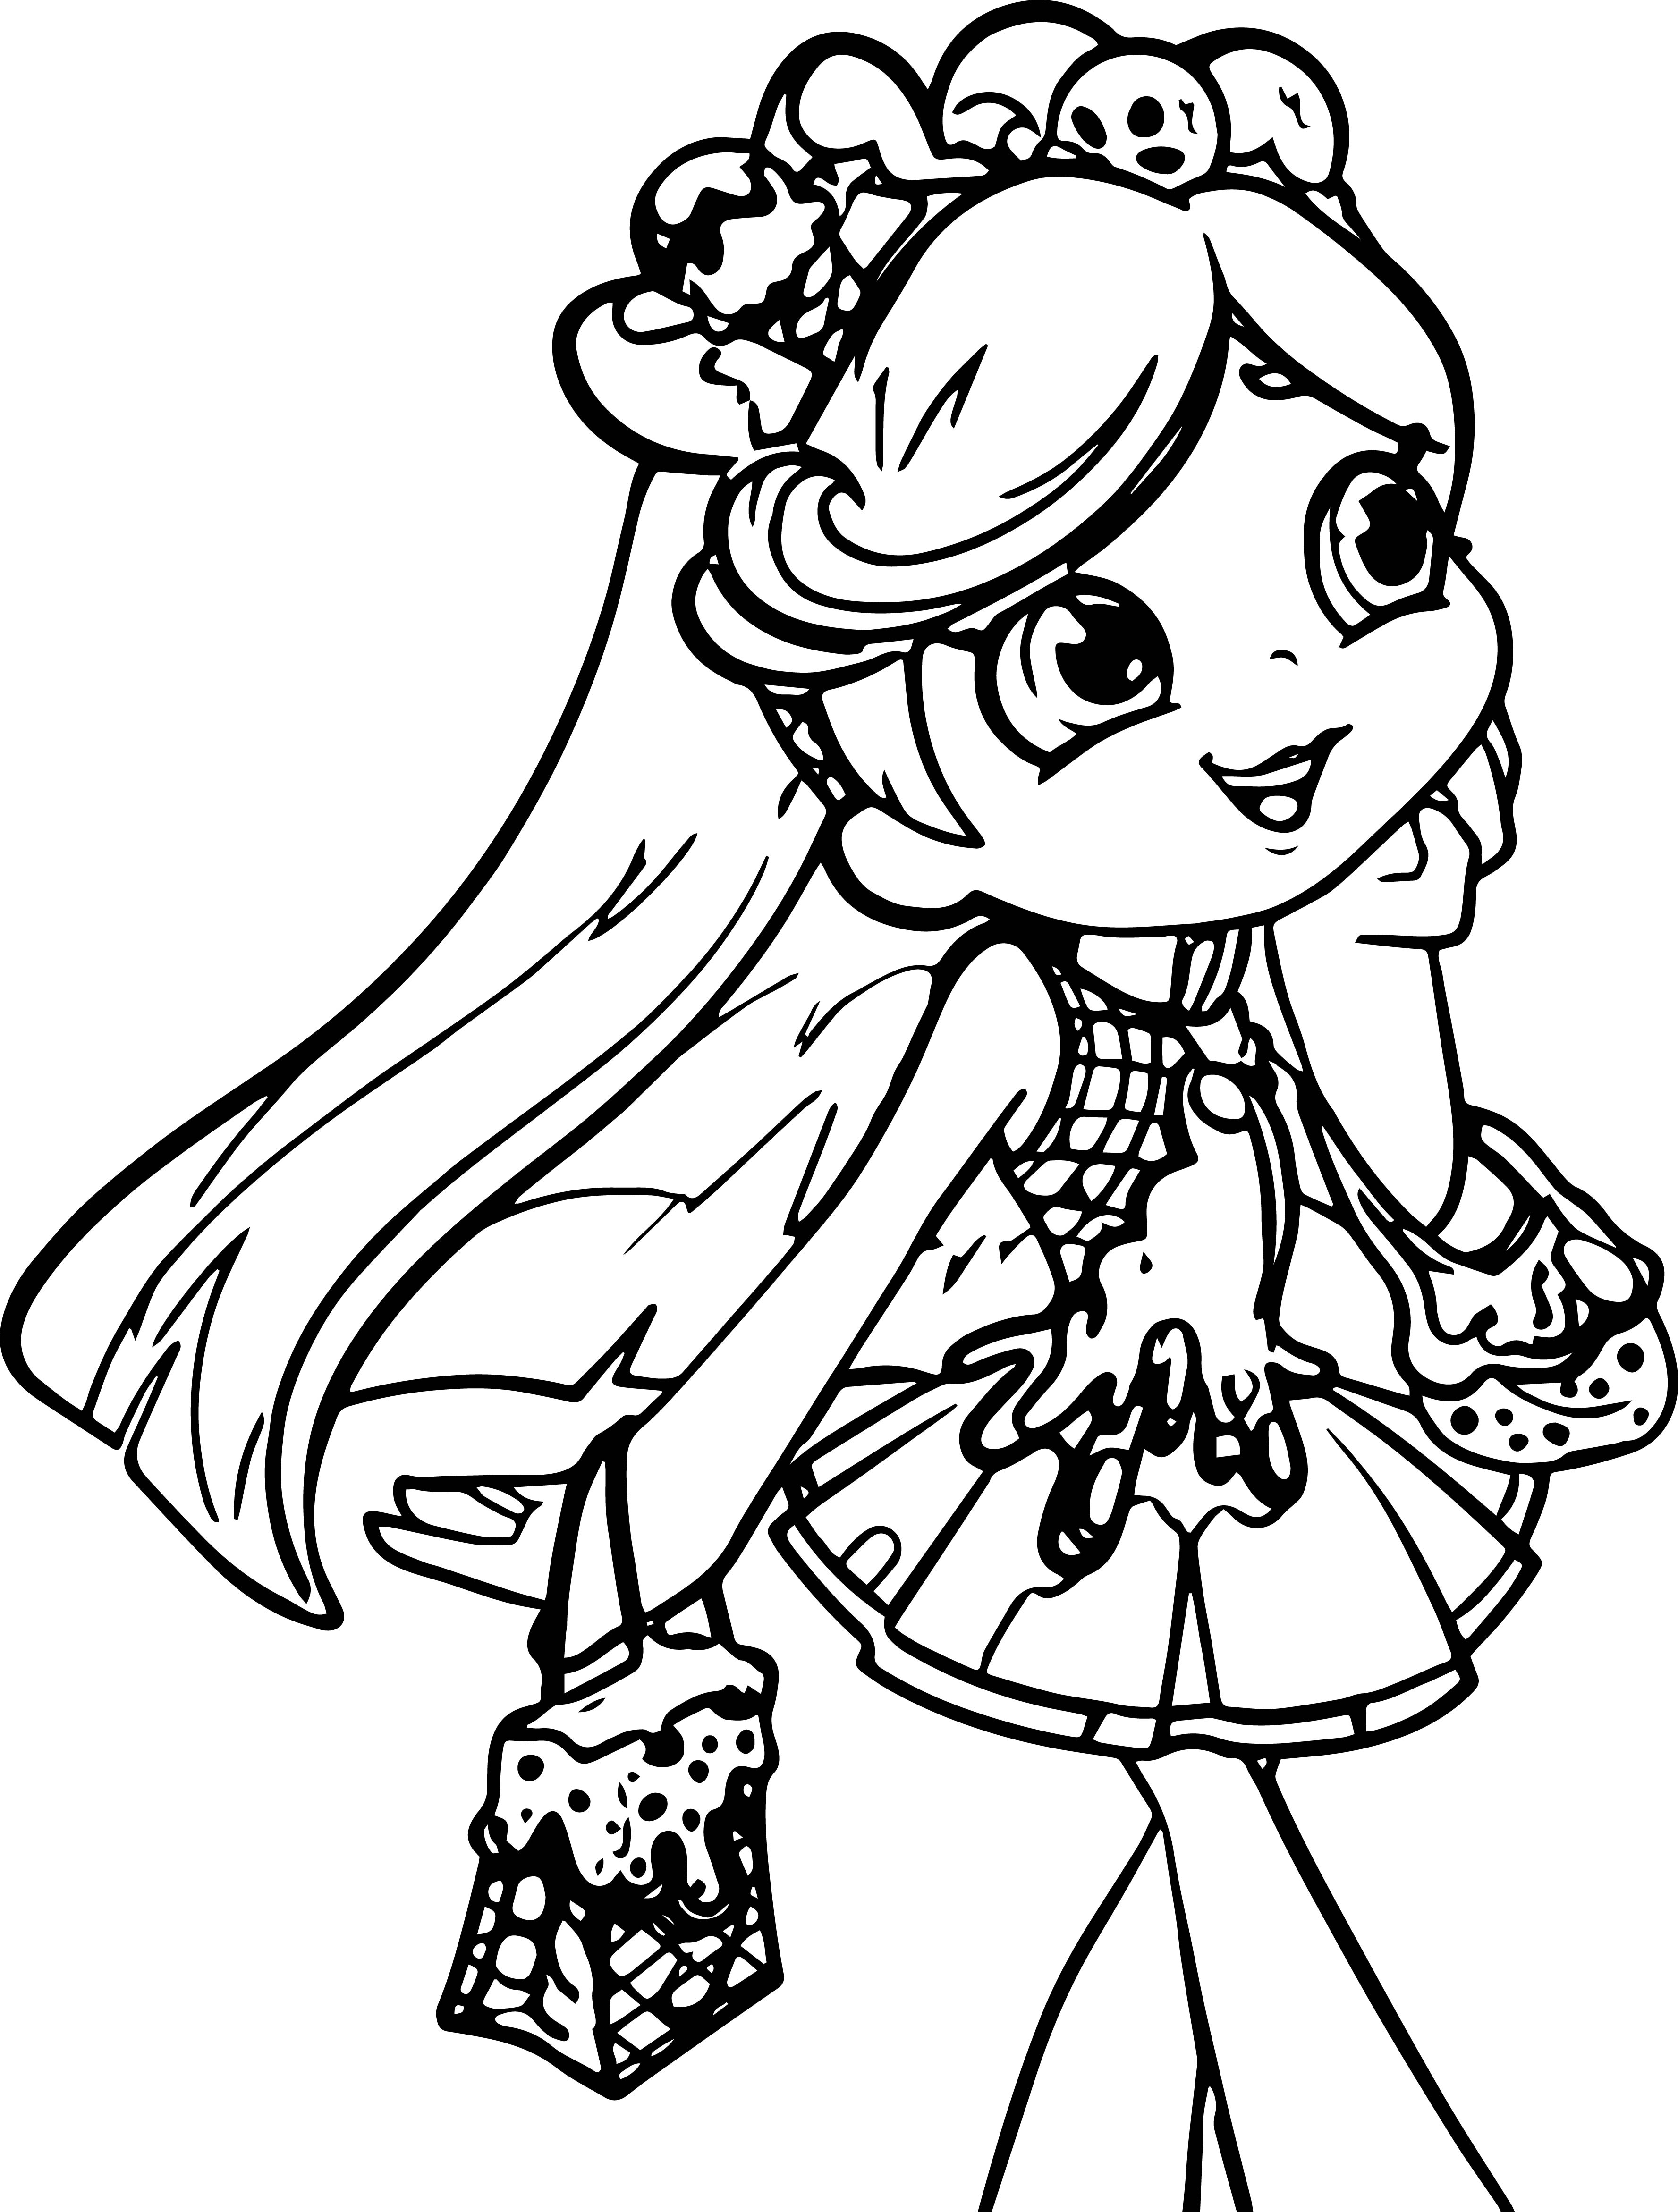 3554x4686 Best Of Shopkins Coloring Pages For Girls